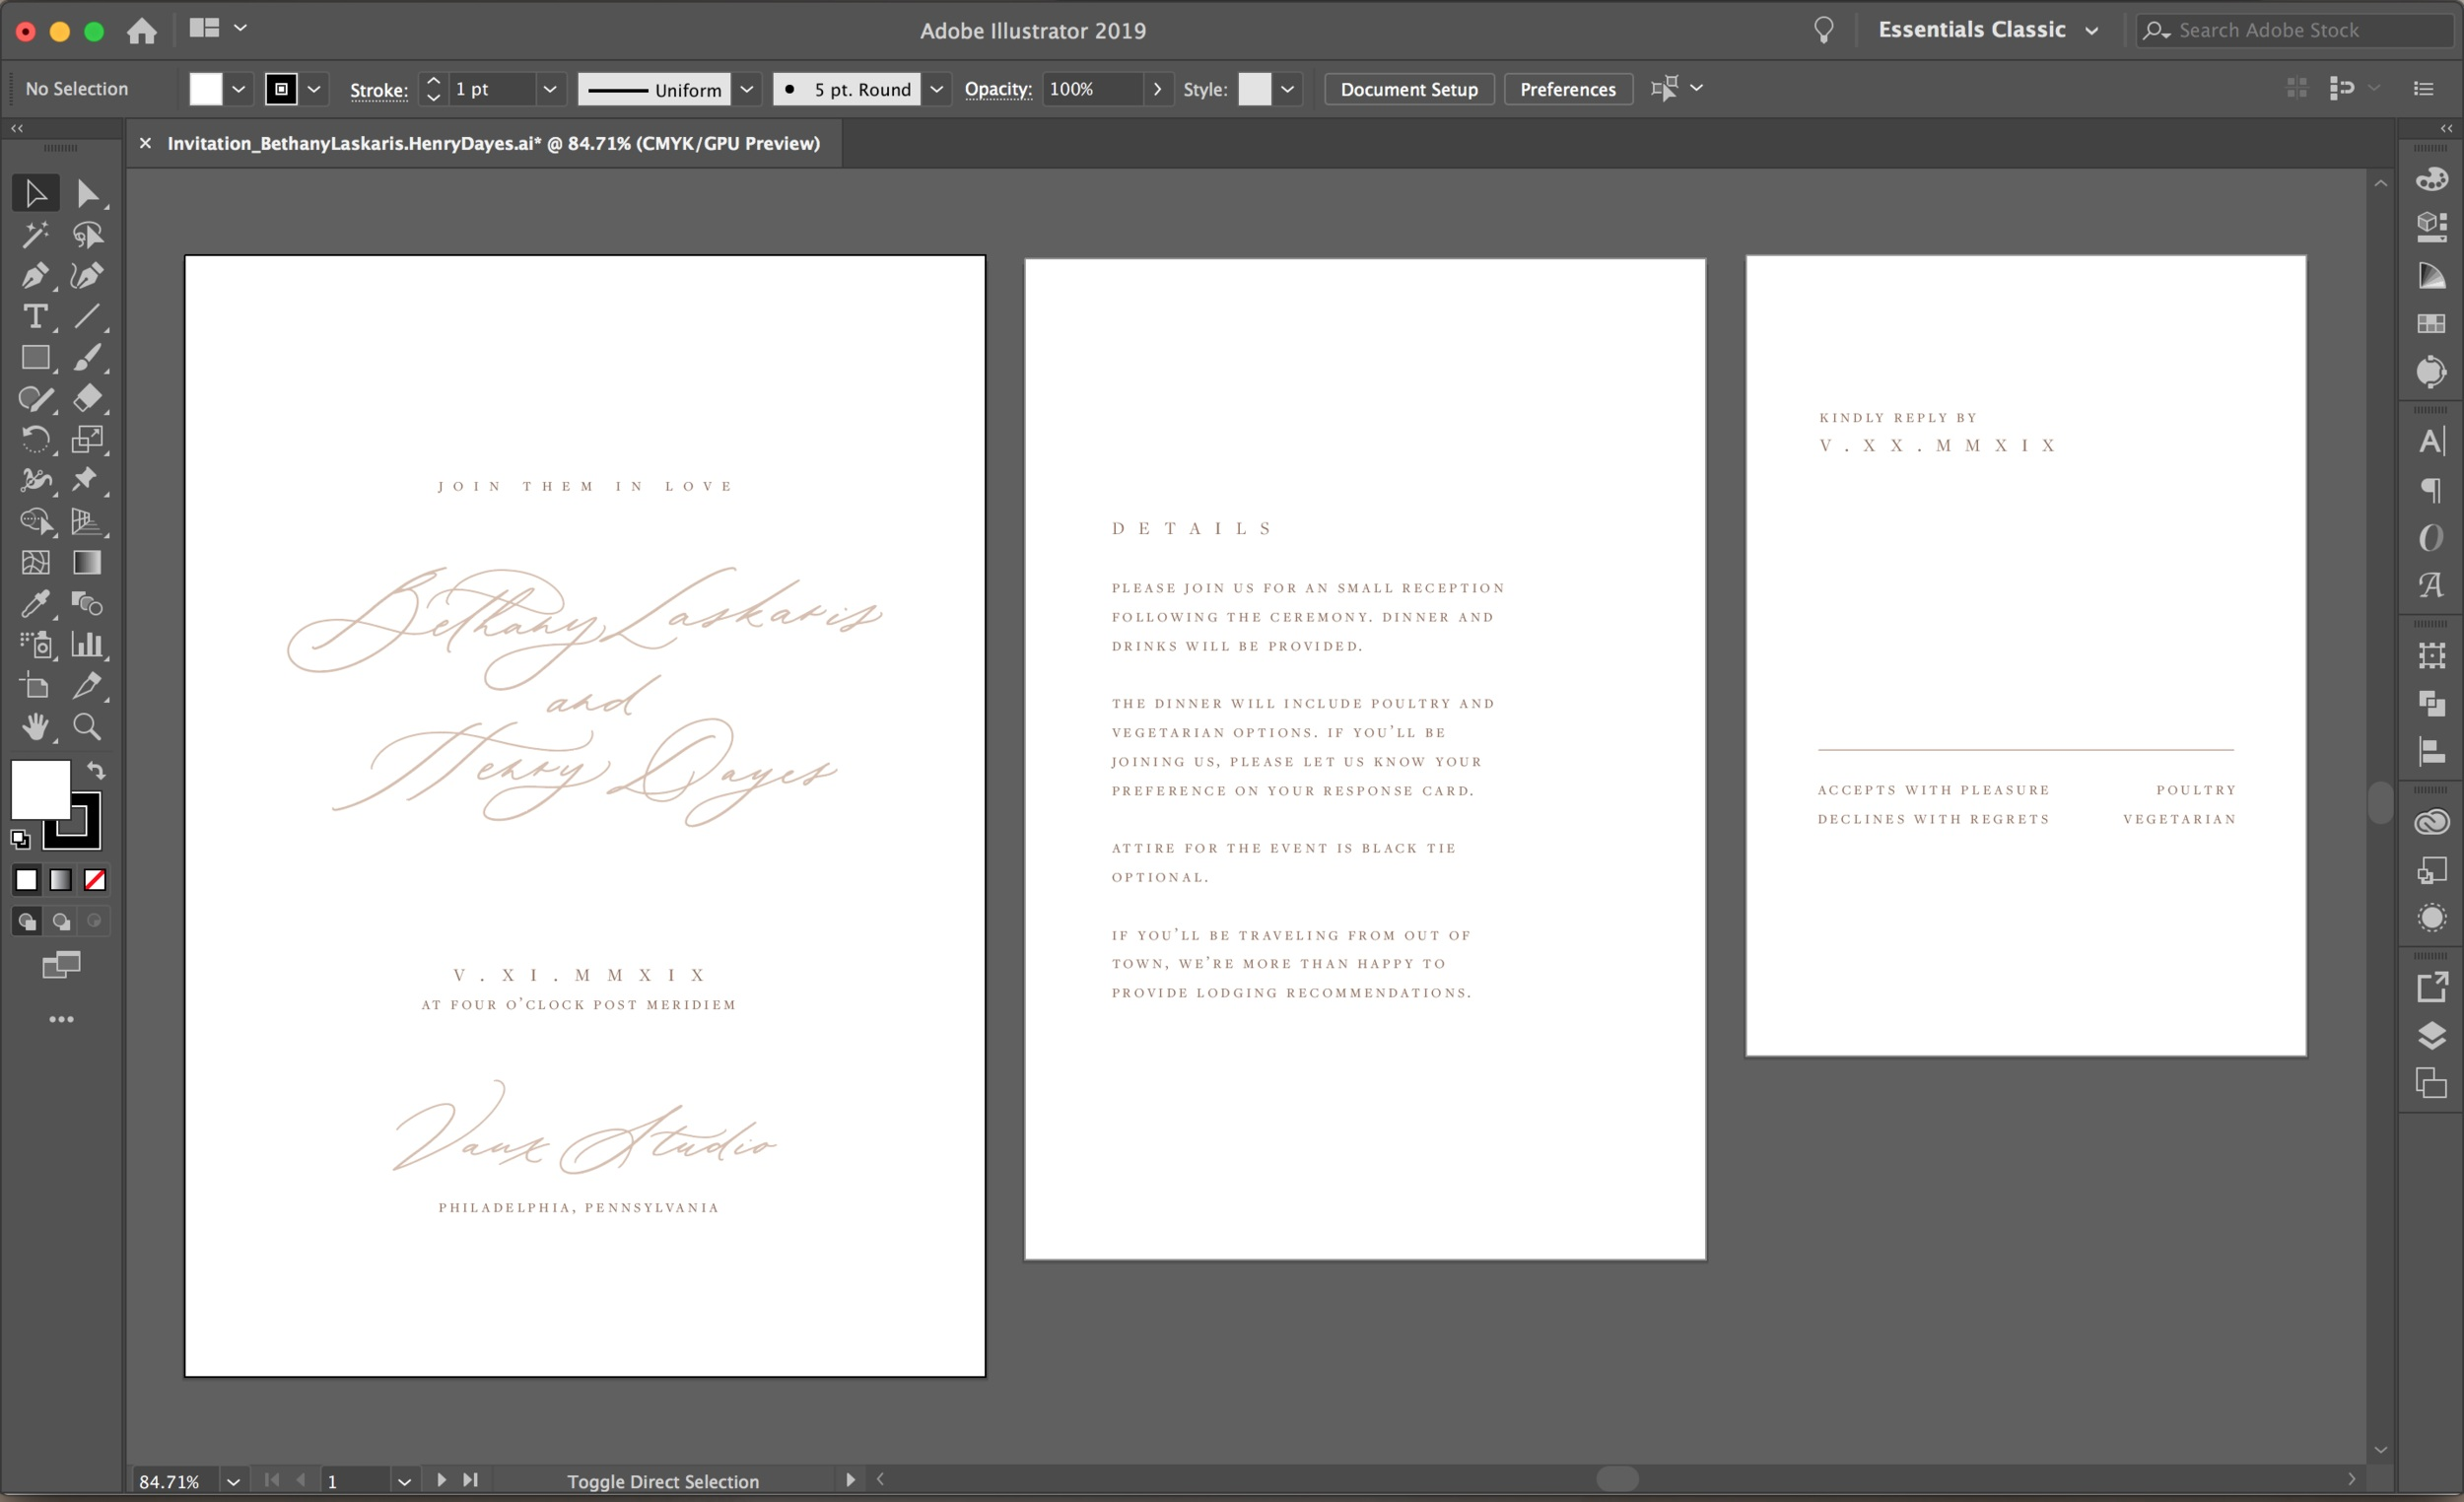 Our illustrator file of the polished invitation suite.